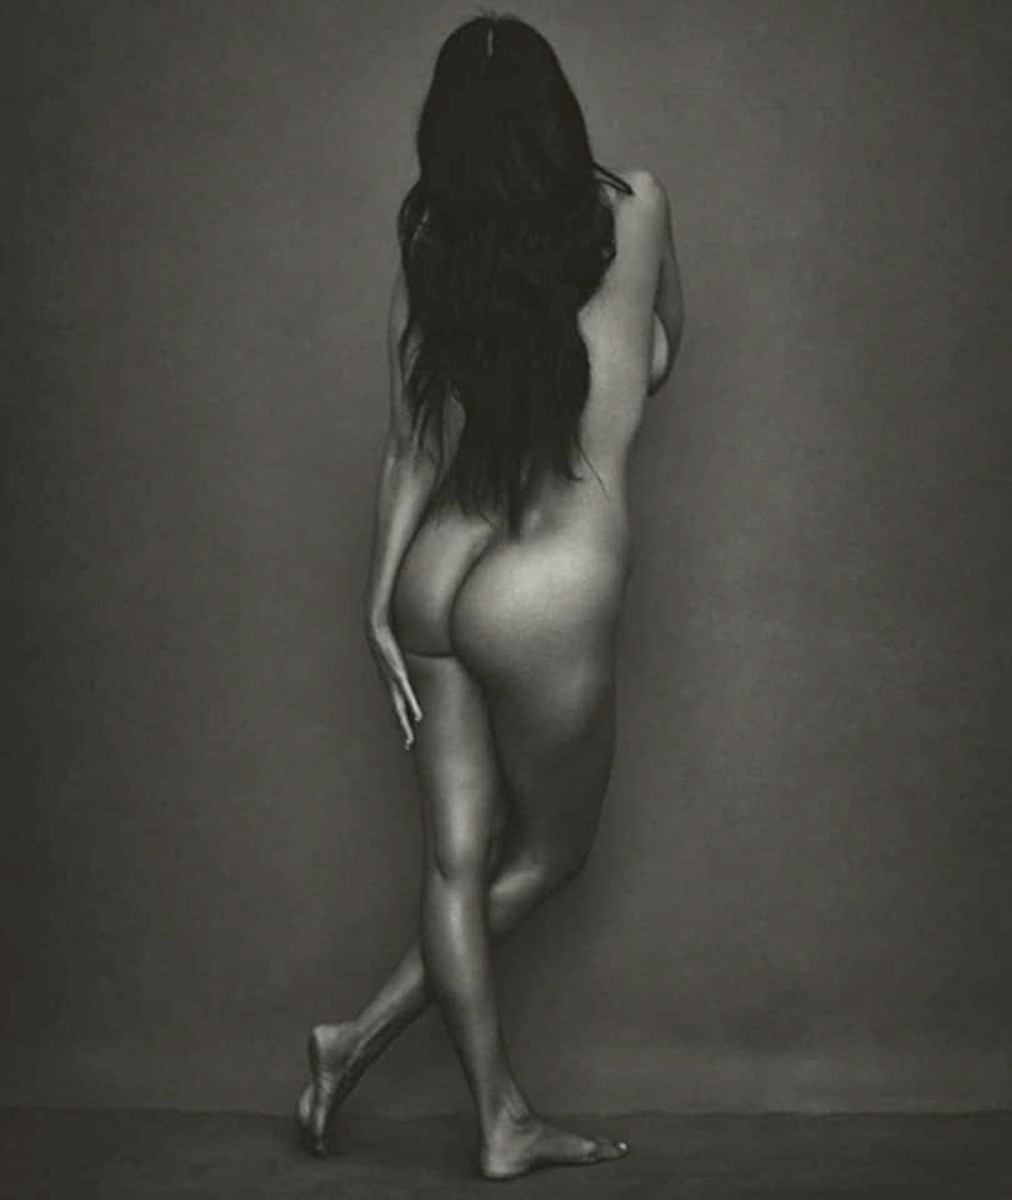 Kourtney Kardashian Nude Photo Shoot Outtakes